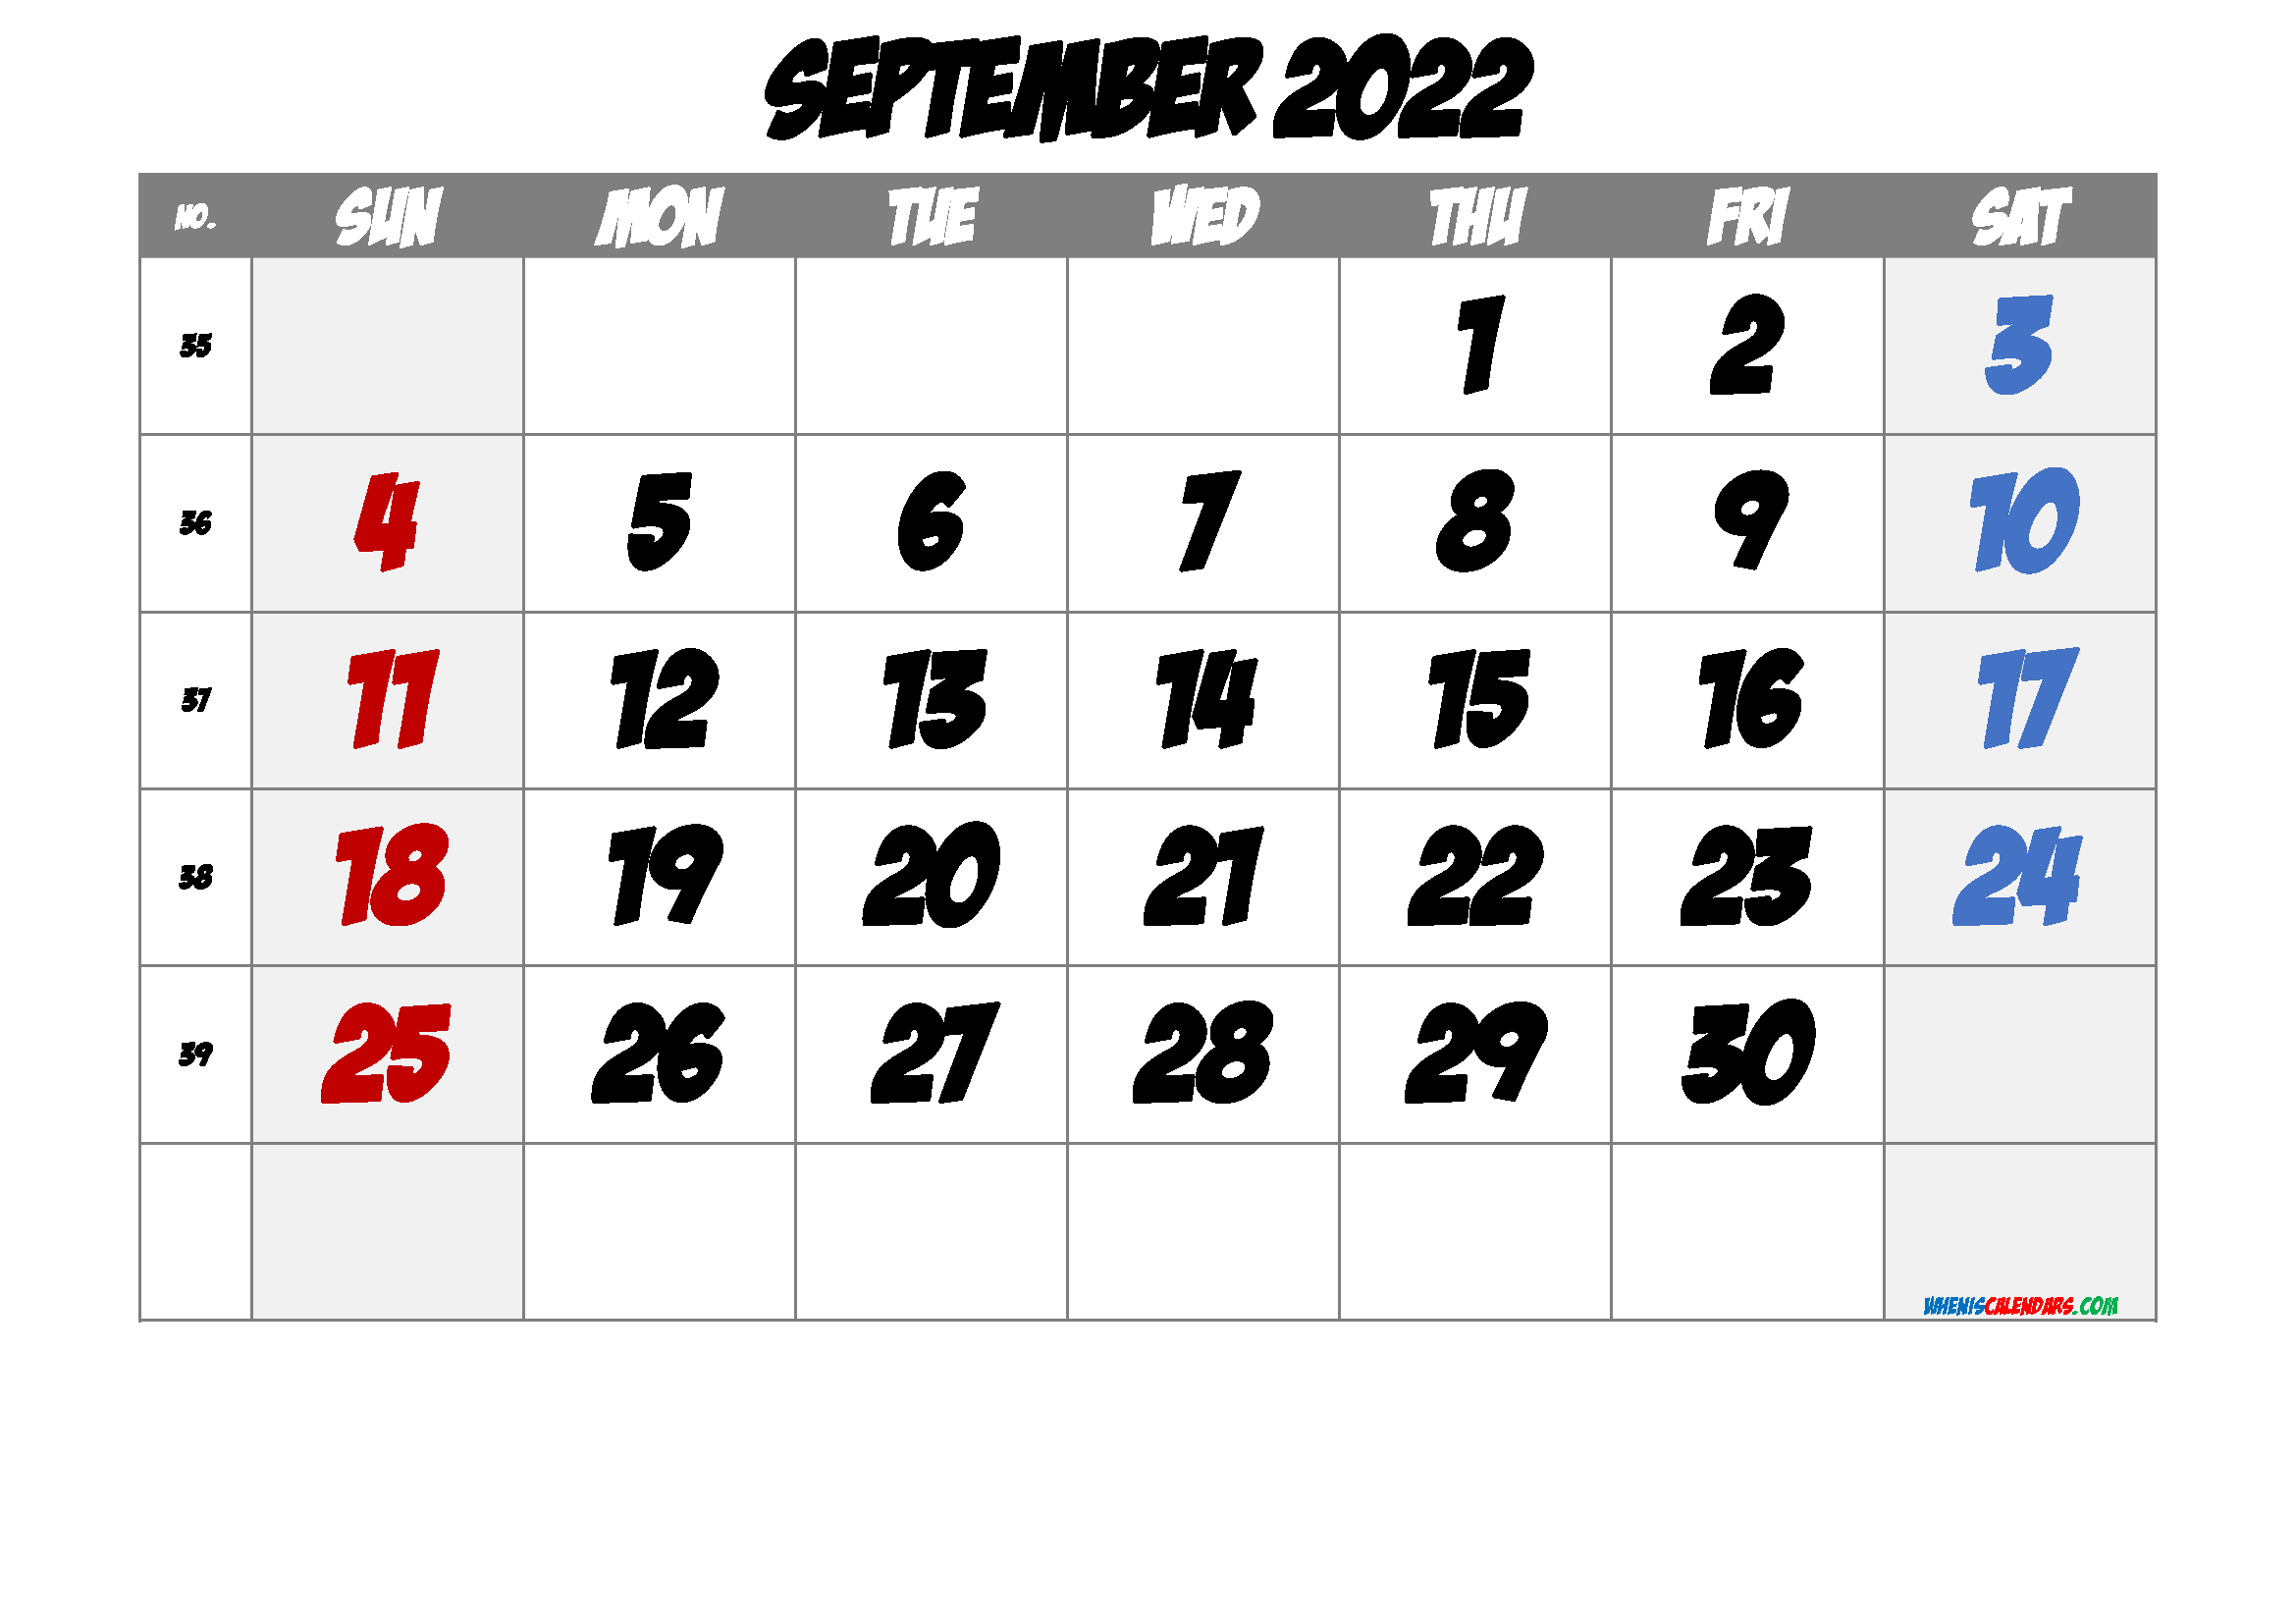 September 2022 Printable Calendar with Week Numbers